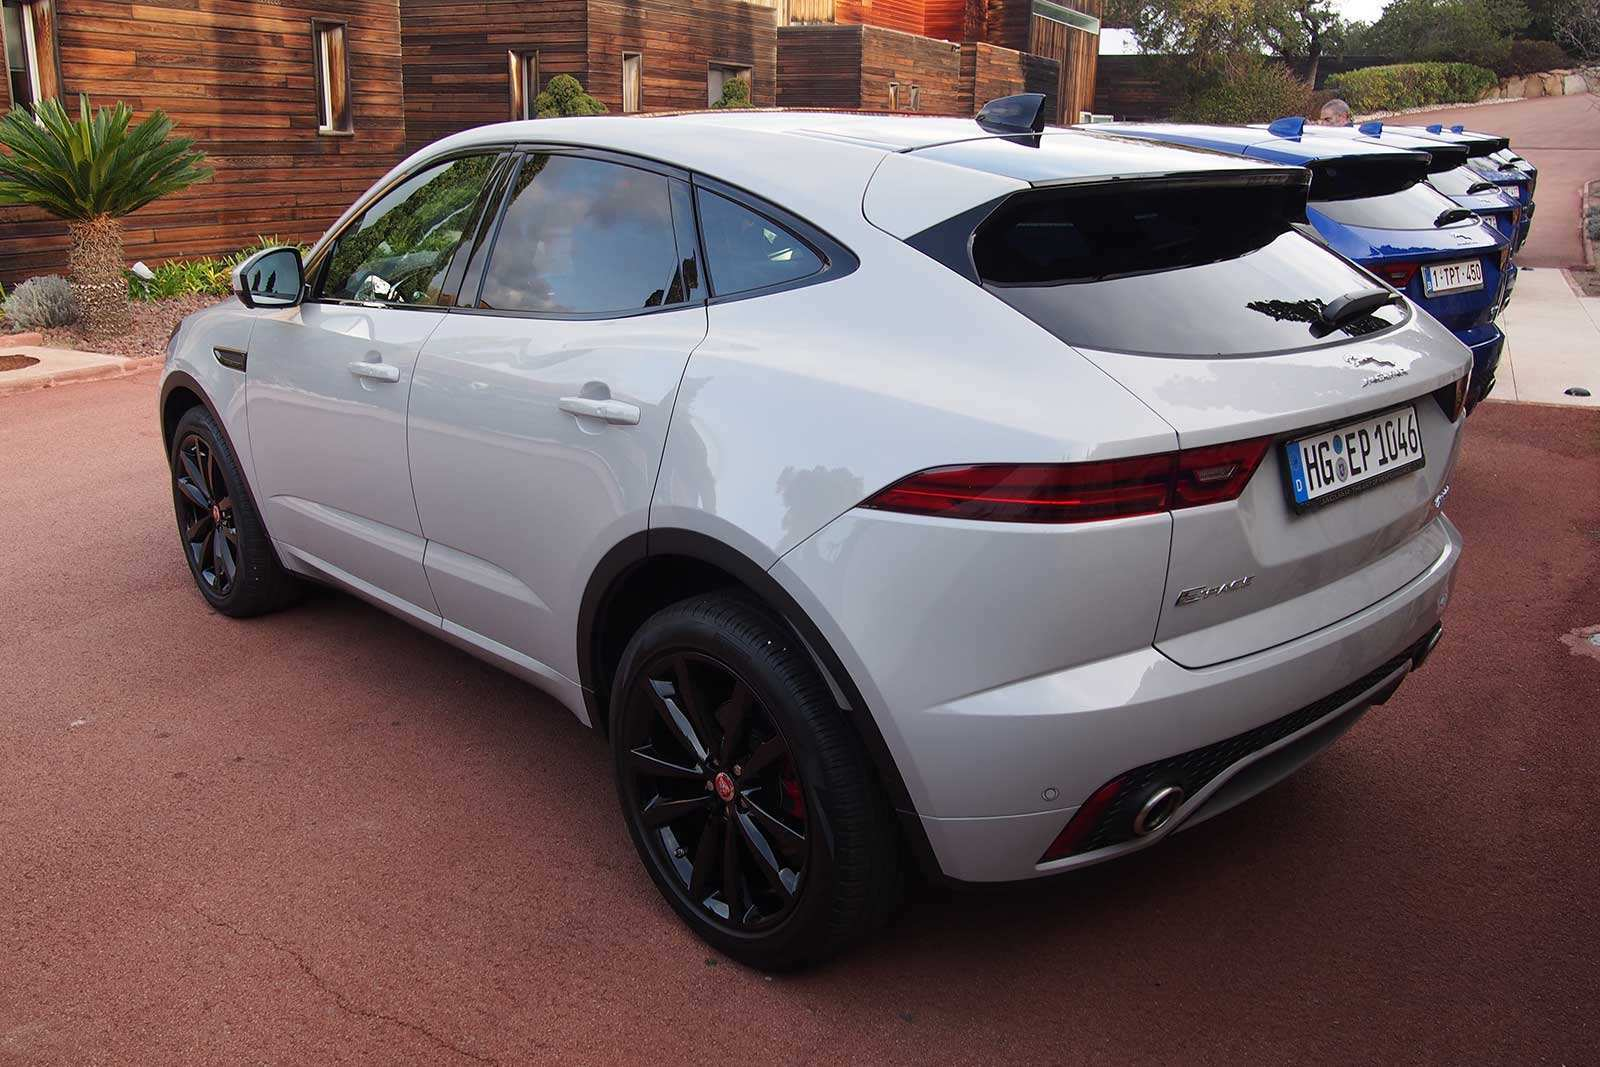 47 New 2019 Jaguar E Pace 2 Price and Review by 2019 Jaguar E Pace 2